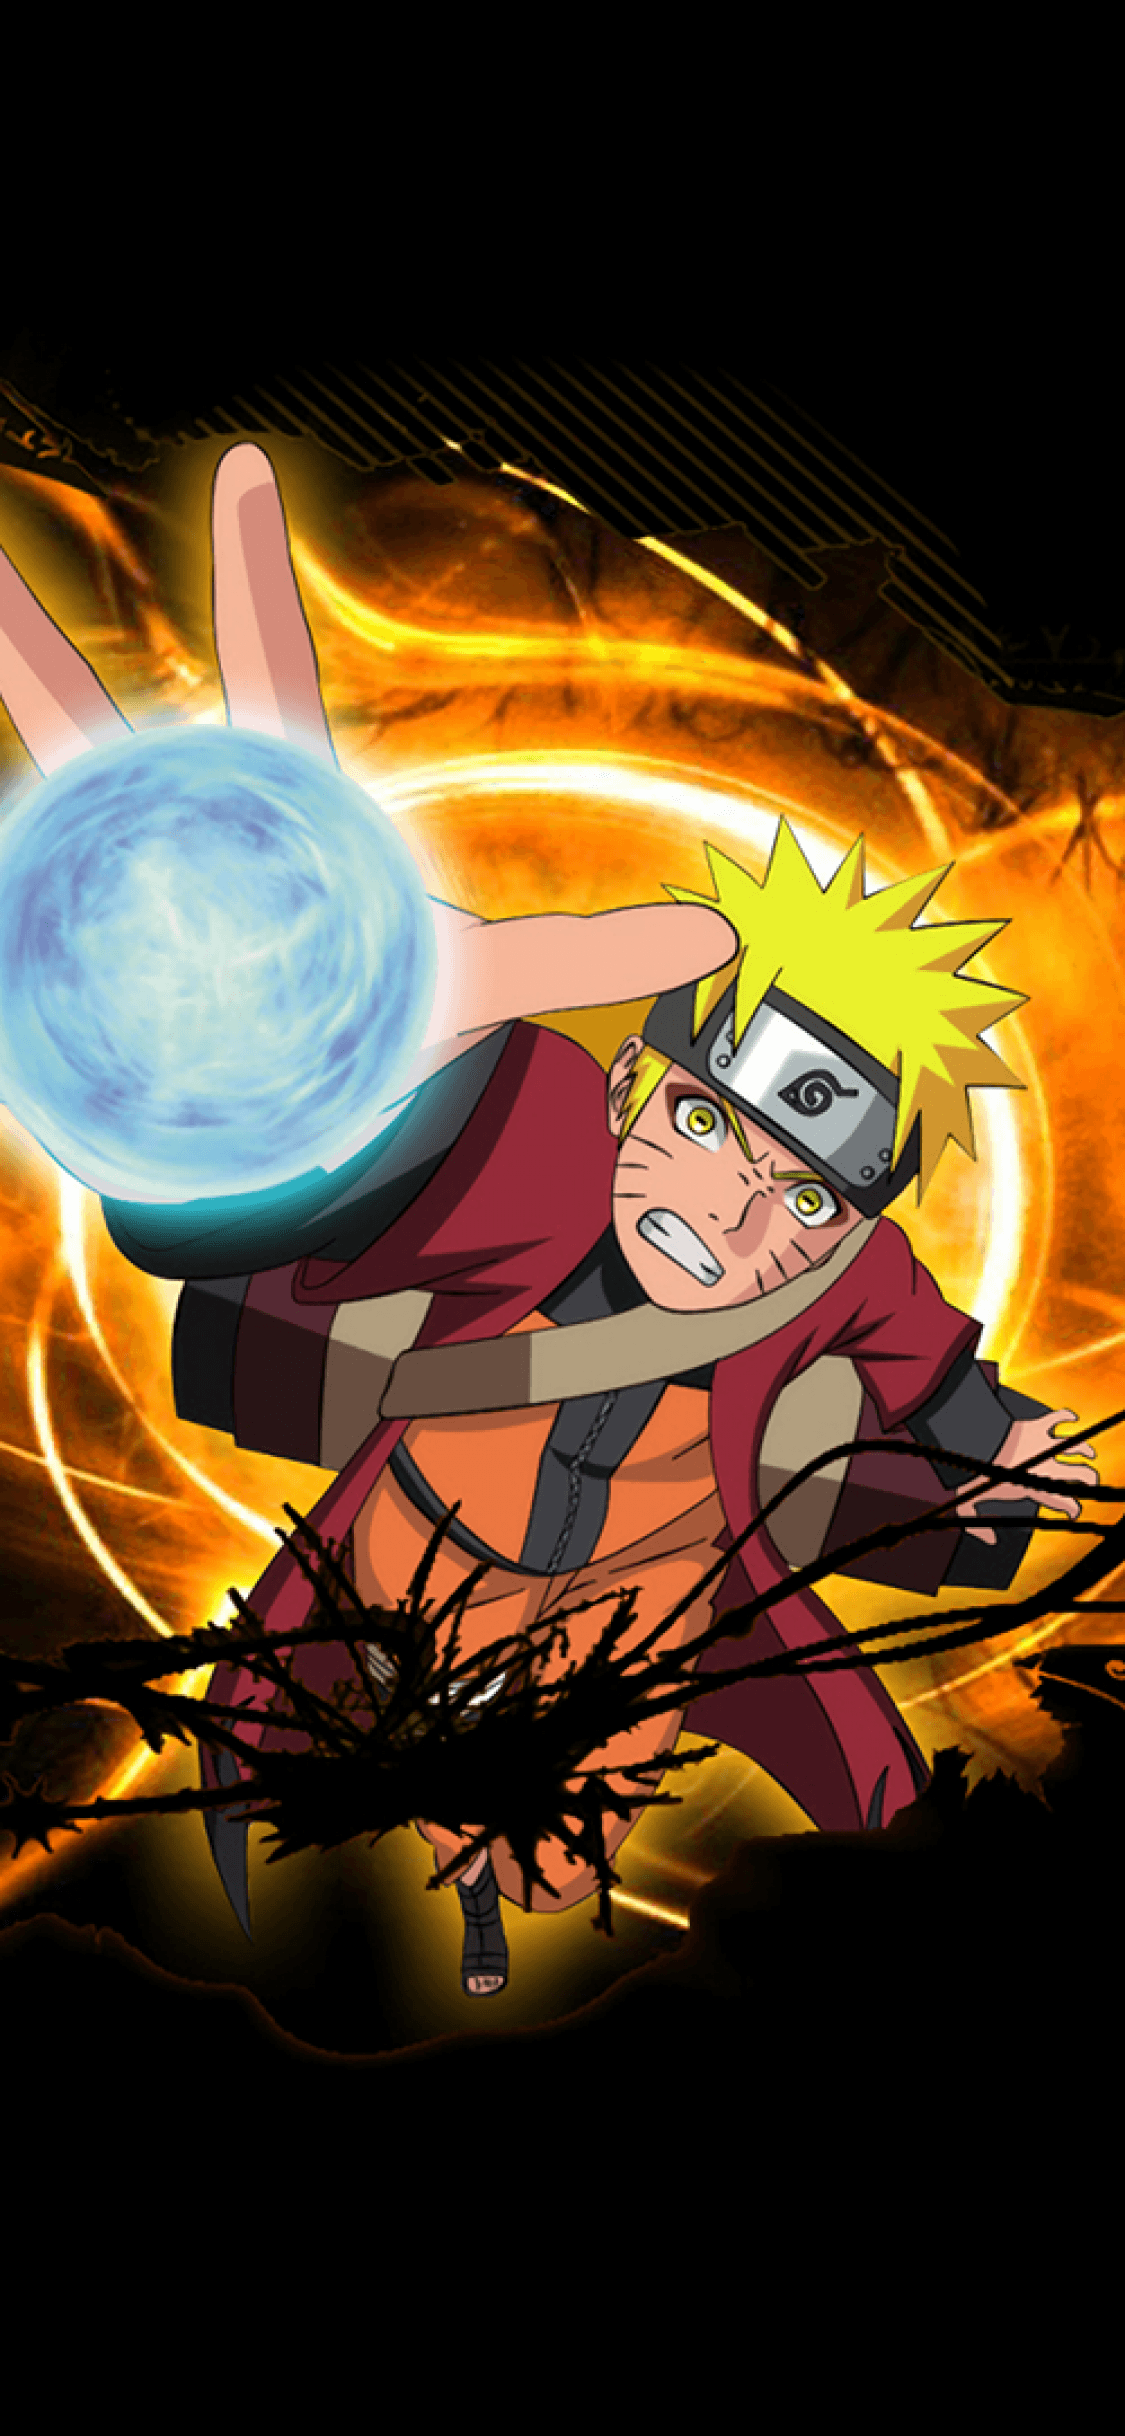 Naruto Iphone Wallpapers Wallpaper Cave